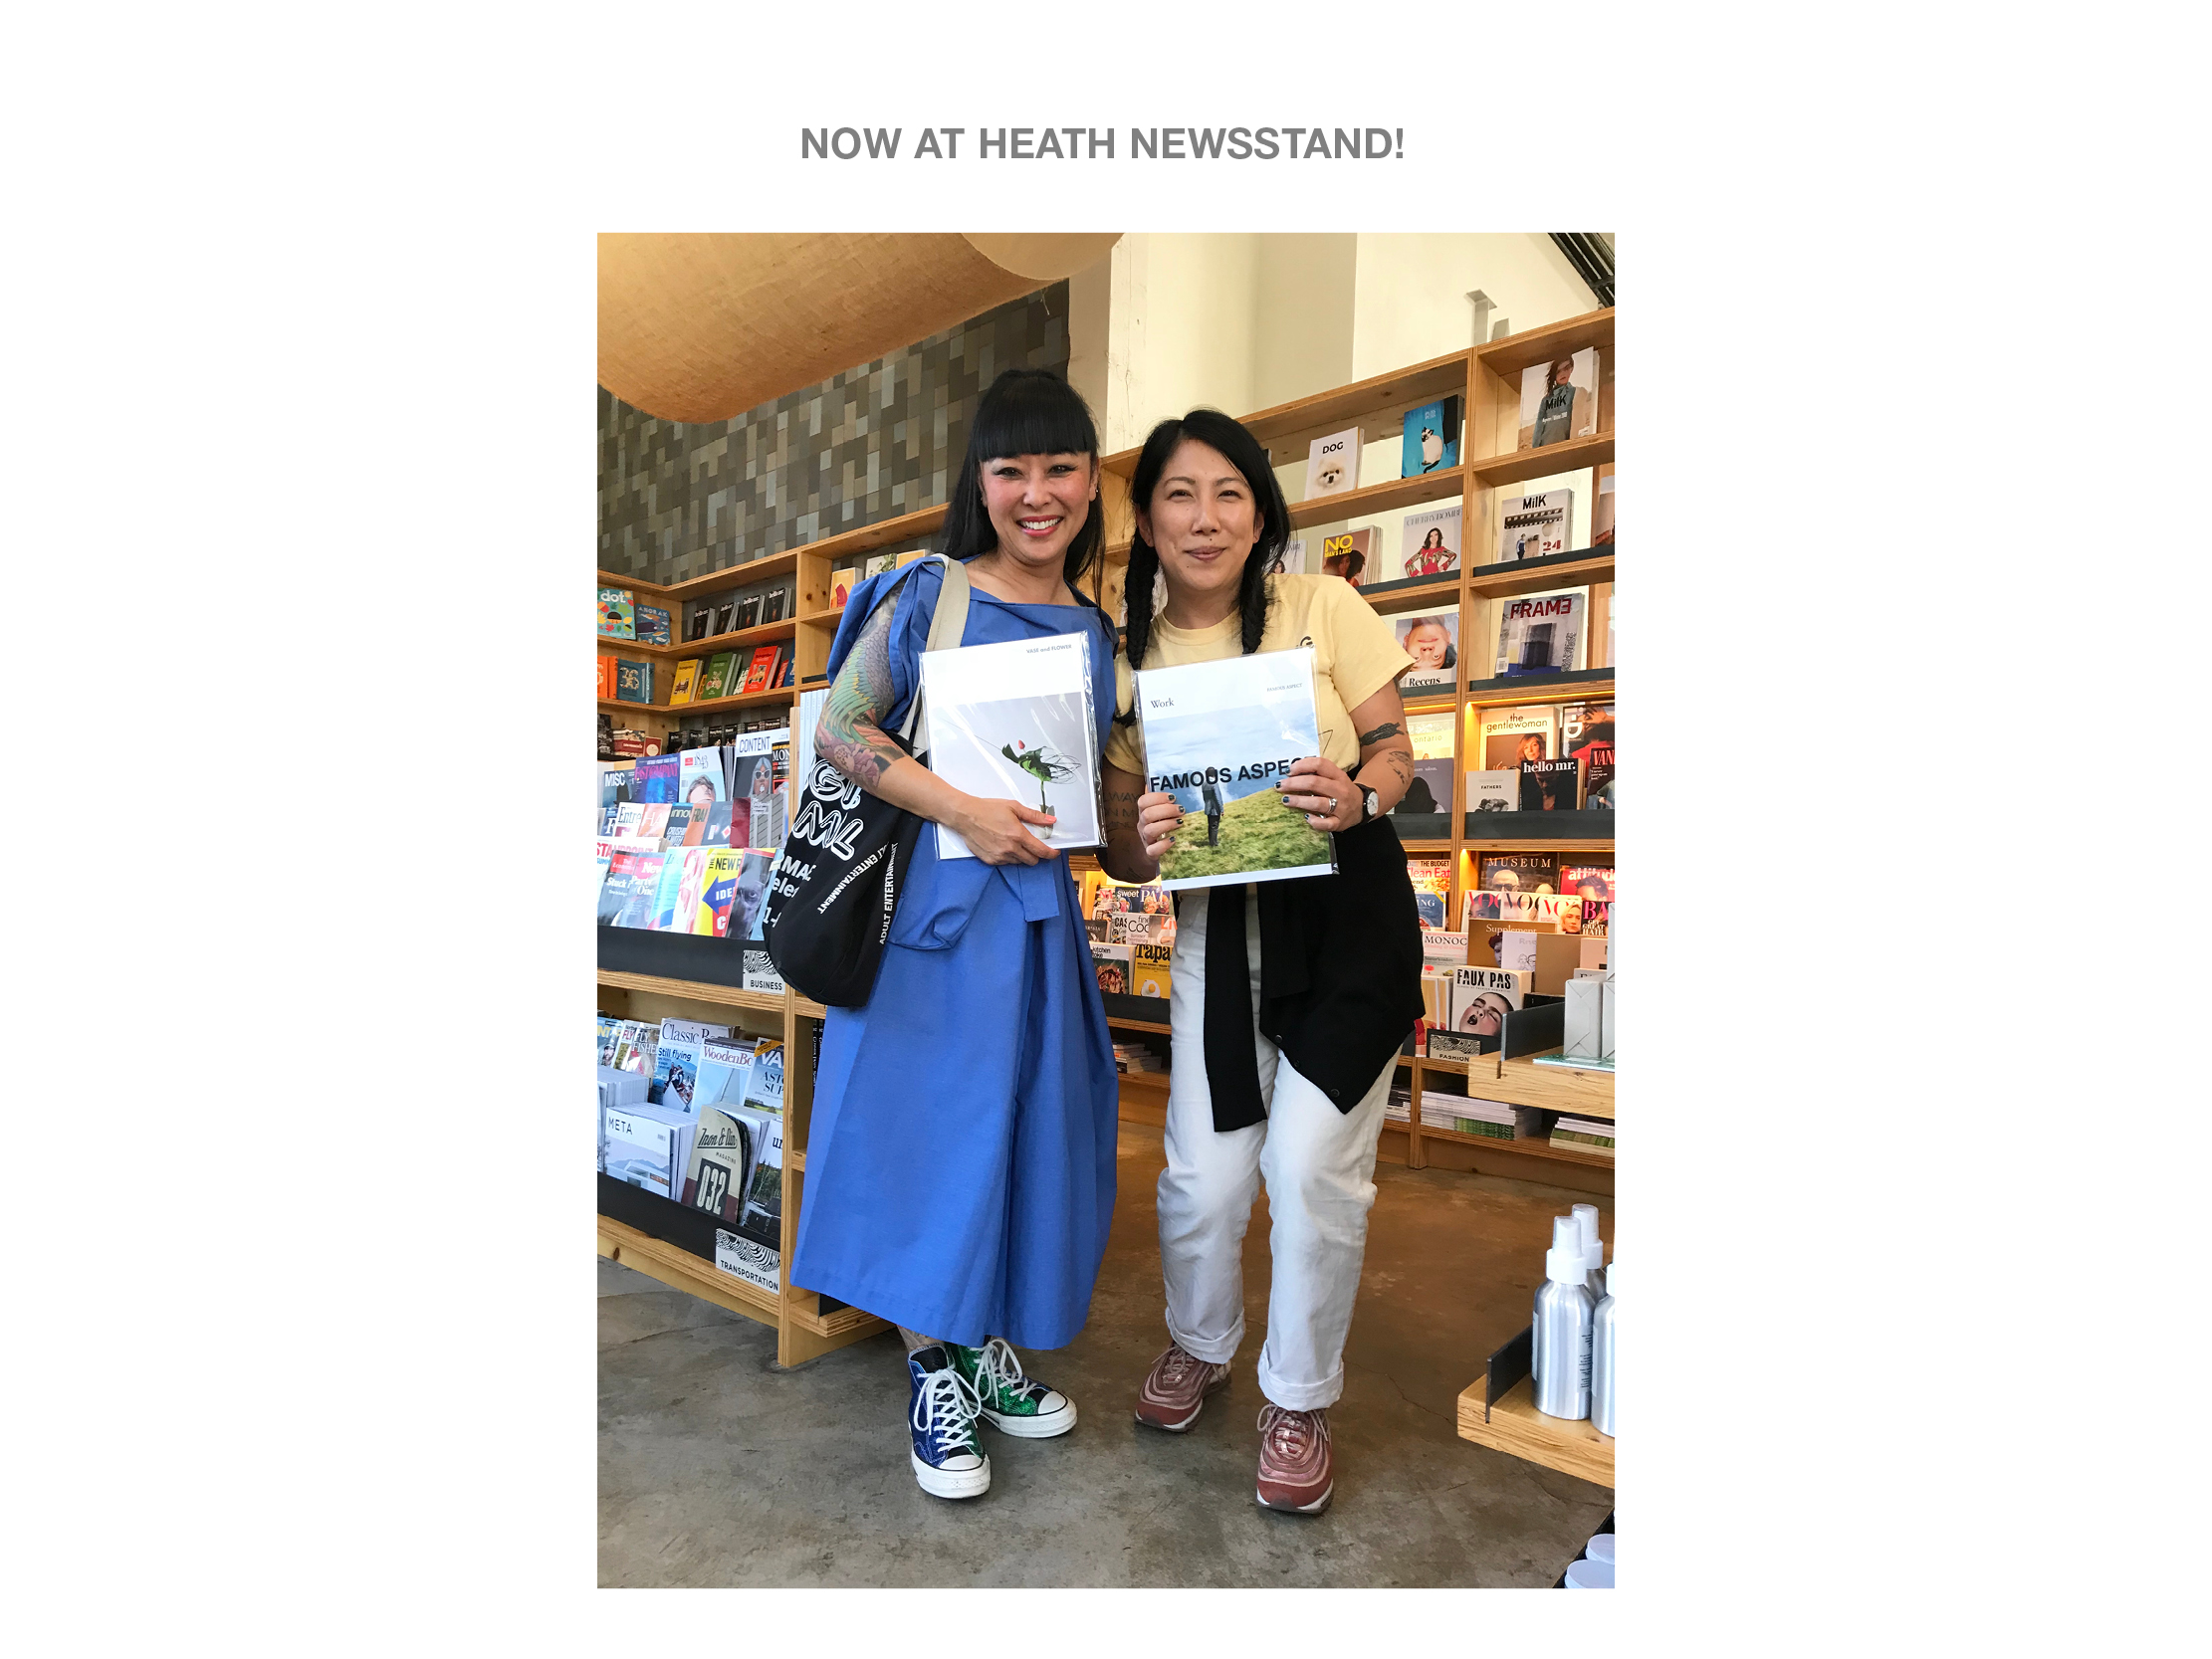 """VASE and FLOWER"" book and FAMOUS ASPECT NO.5 the 20th Anniversary Issue are now at Heath Newsstand."